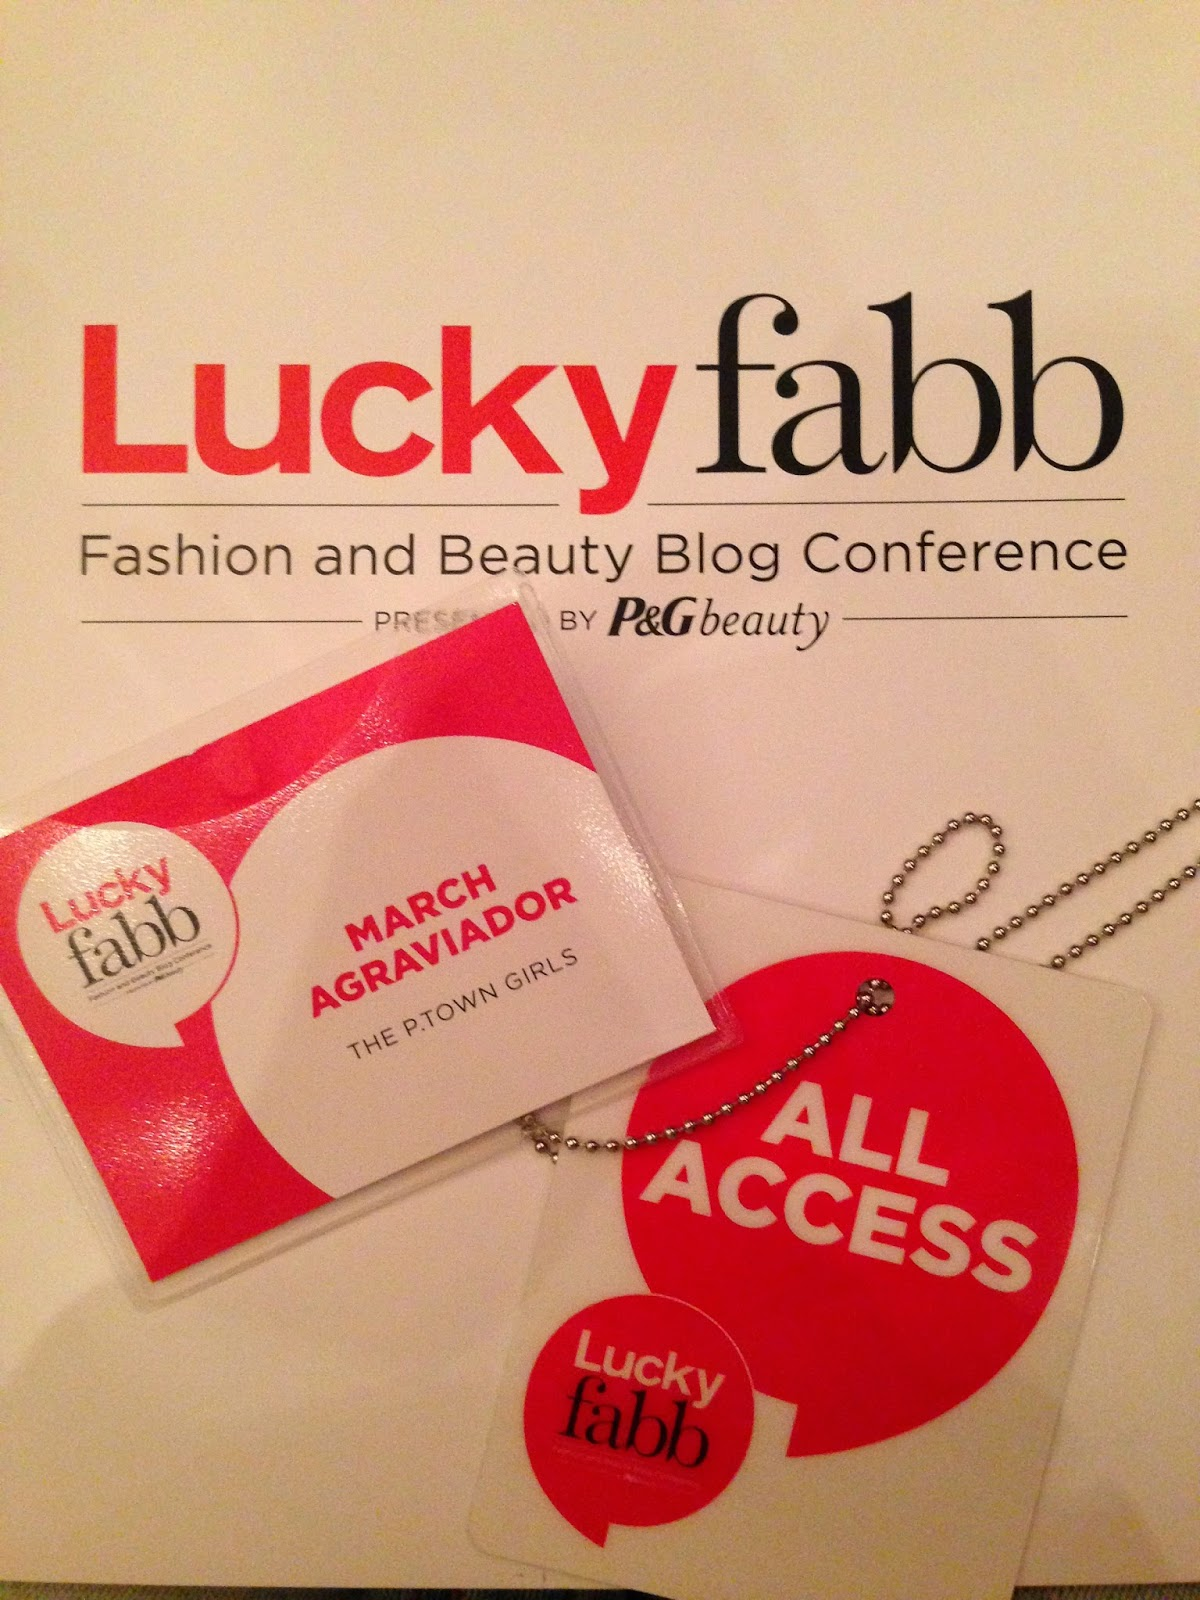 lucky magazine fabb conference blogger fashion and beauty nicole richie song of style wendy's cookbook coco rocha